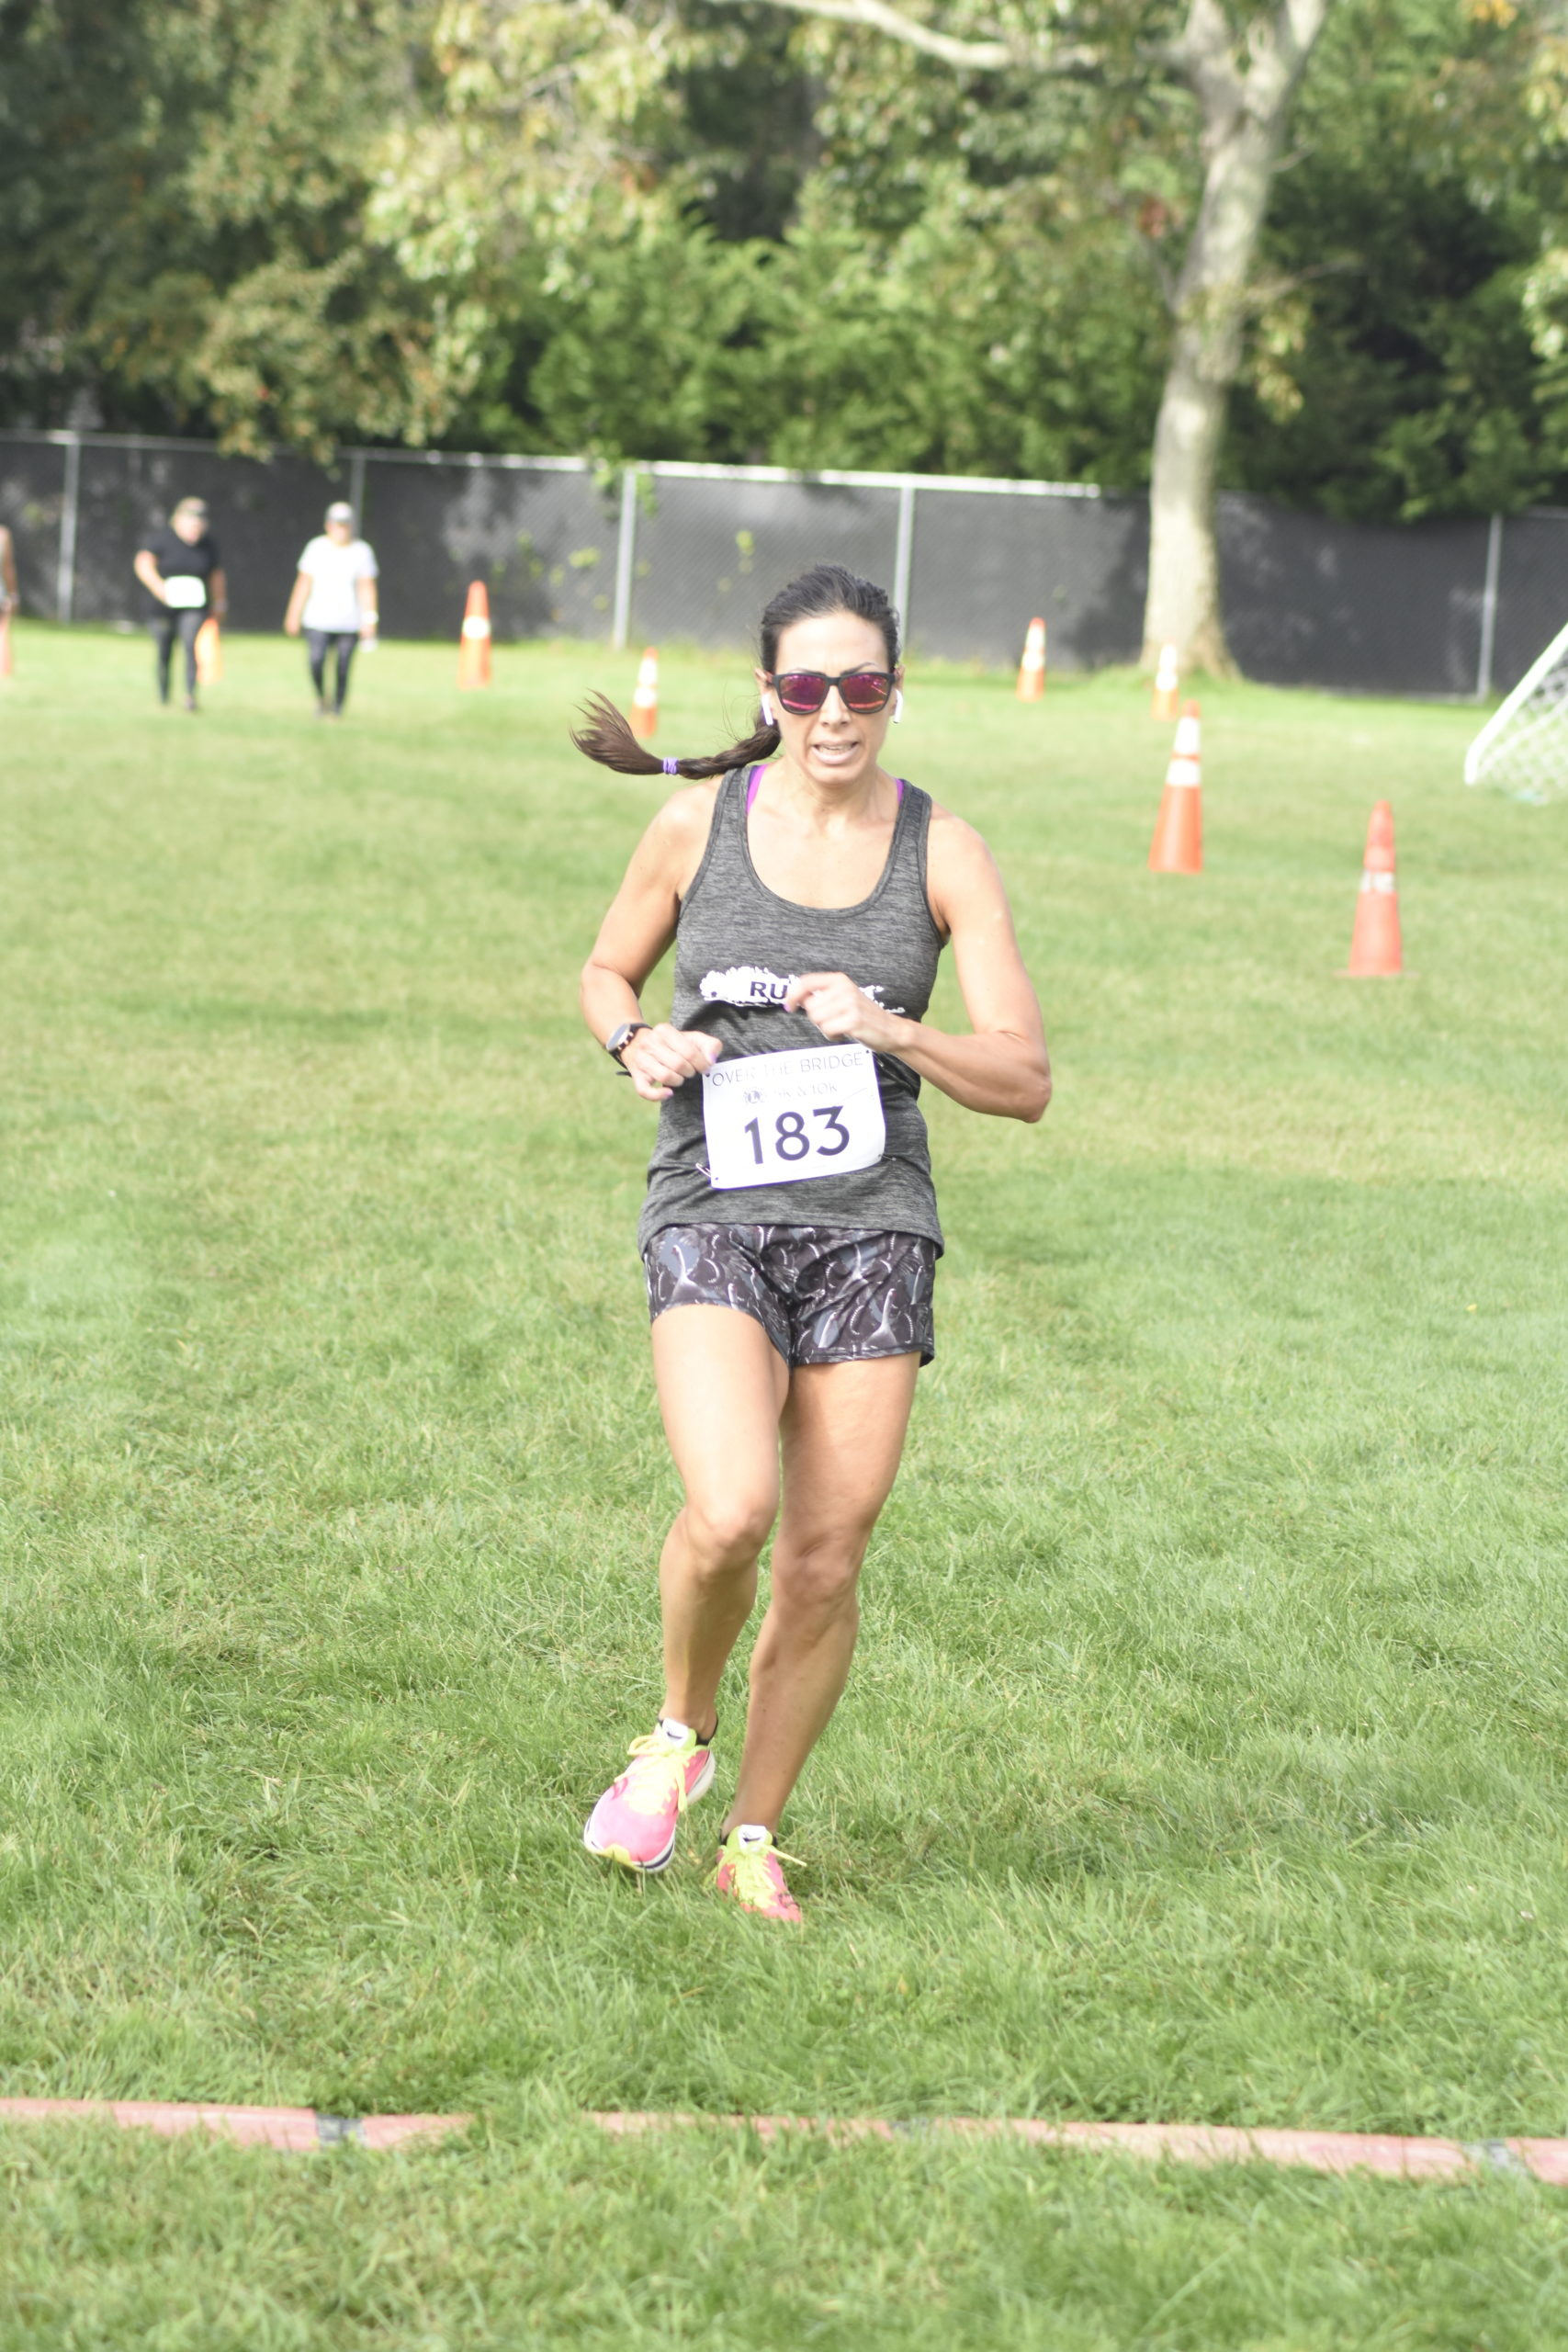 Deanna Devon of Rocky Point was the female champion of the 10K.